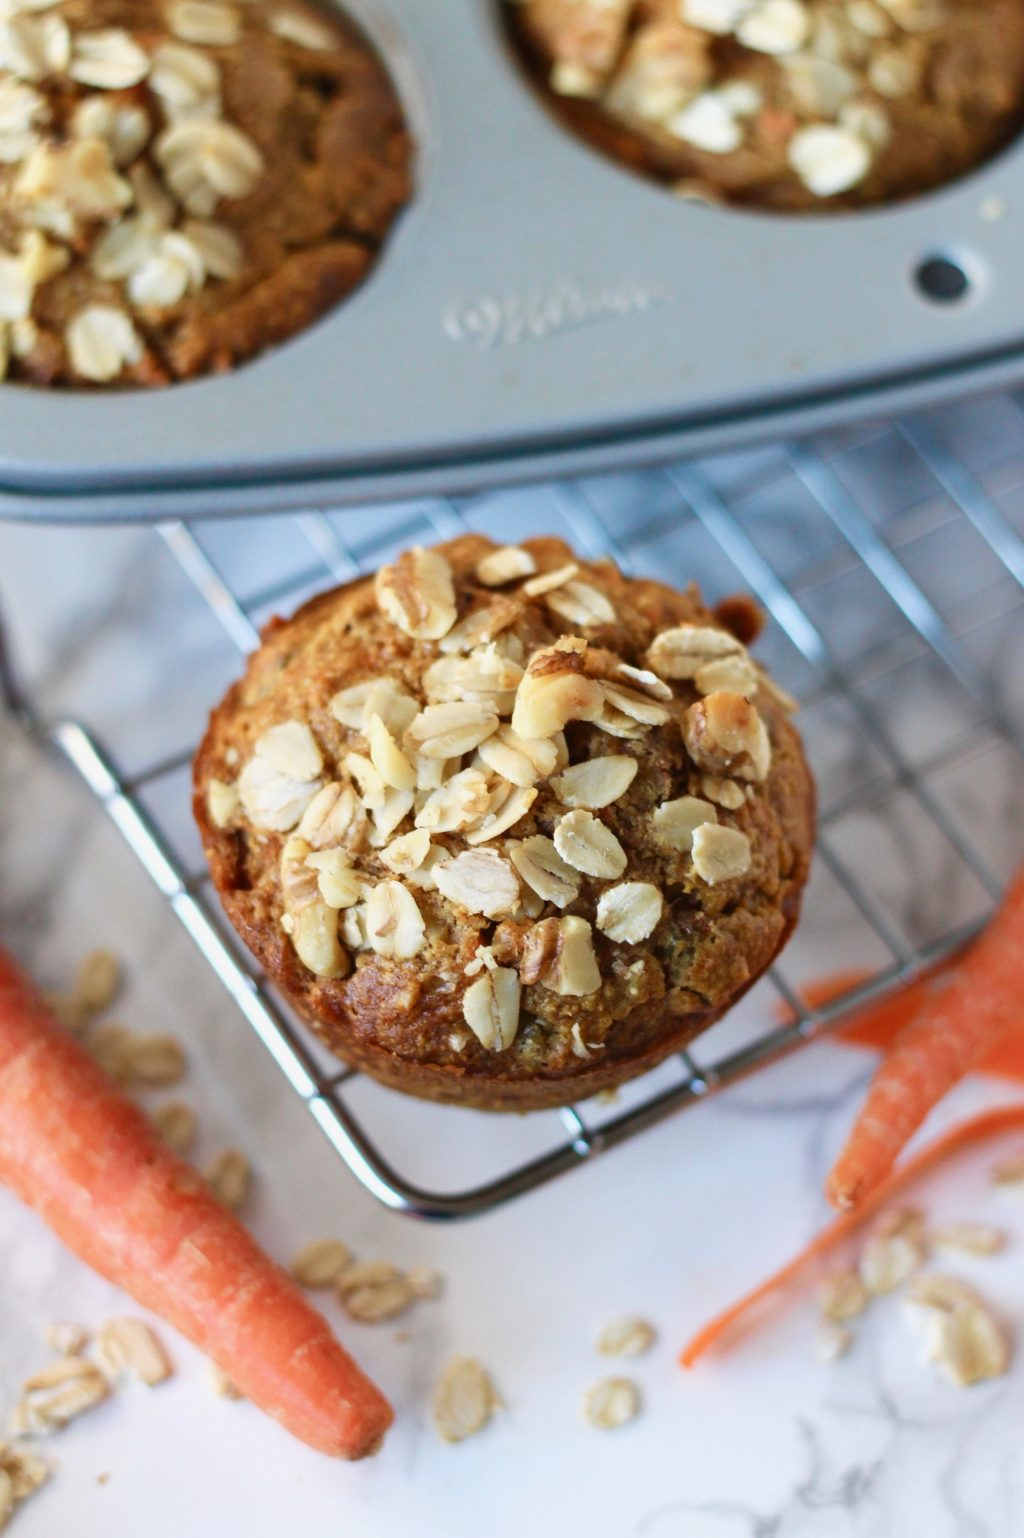 Whole Wheat Carrot Muffins with Walnuts | www.littlechefbigappetite.com 4